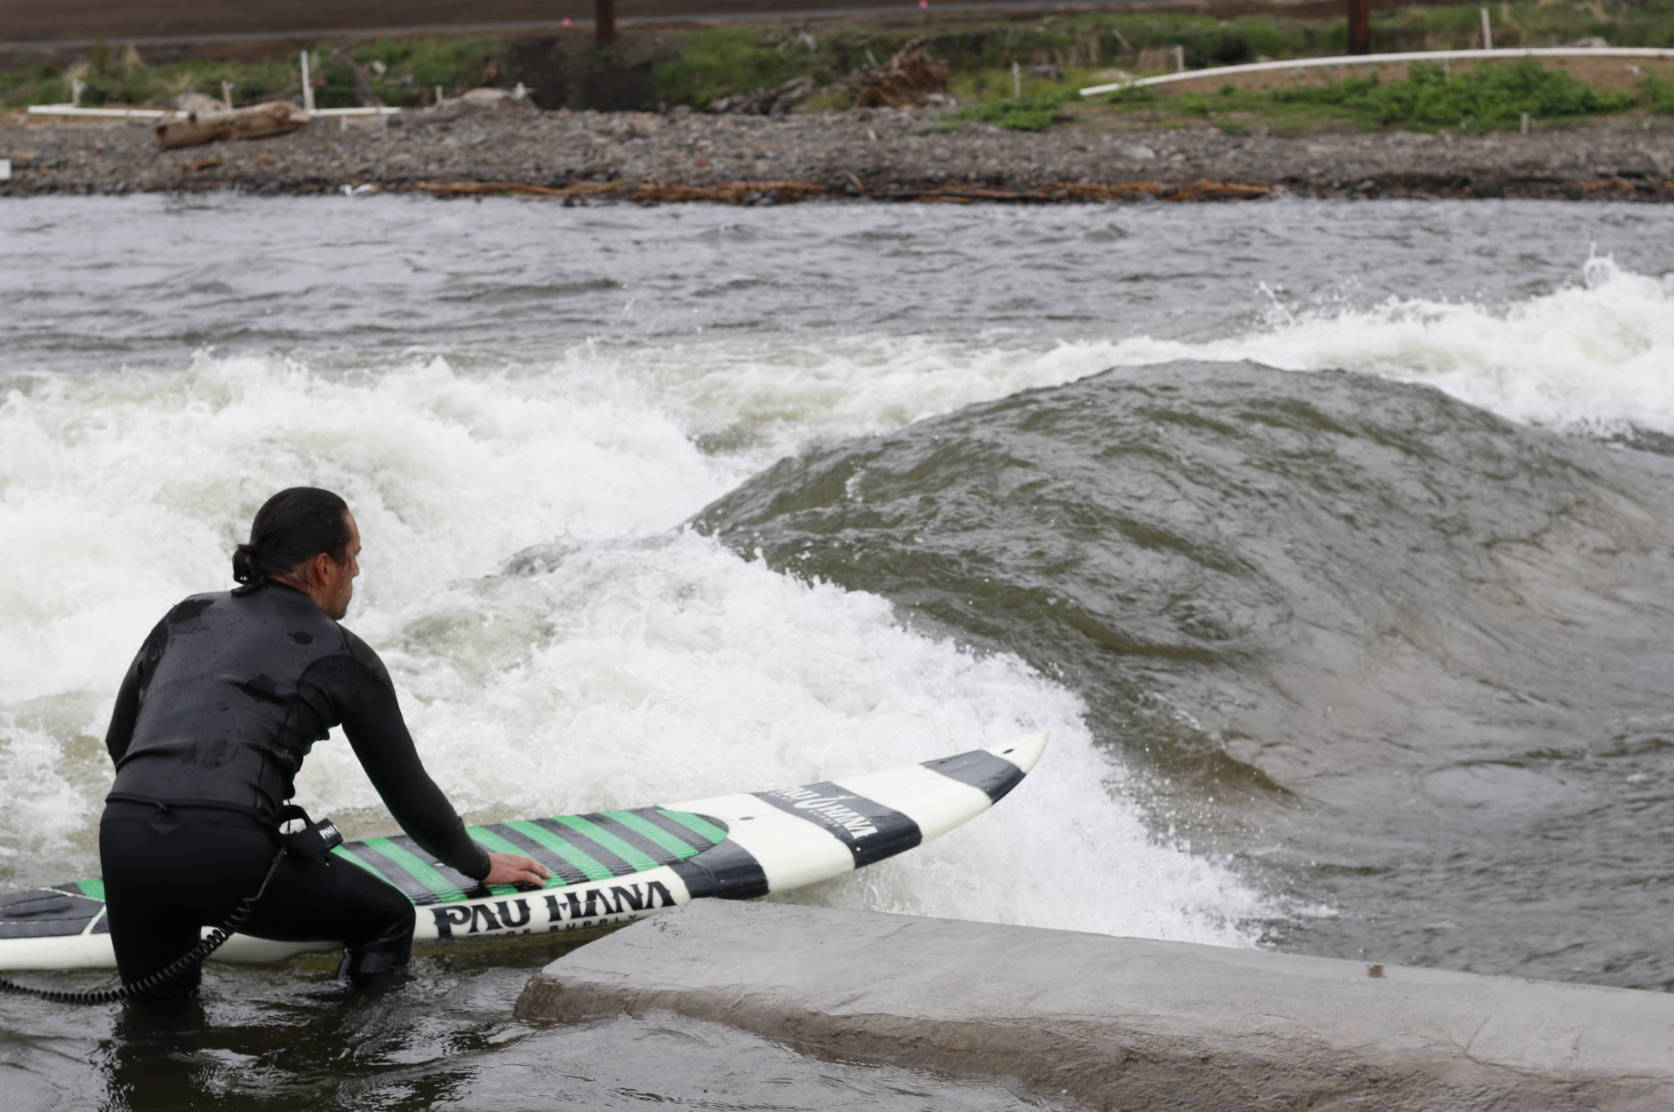 Todd about to launch his surfboard on the bend Oregon river wave